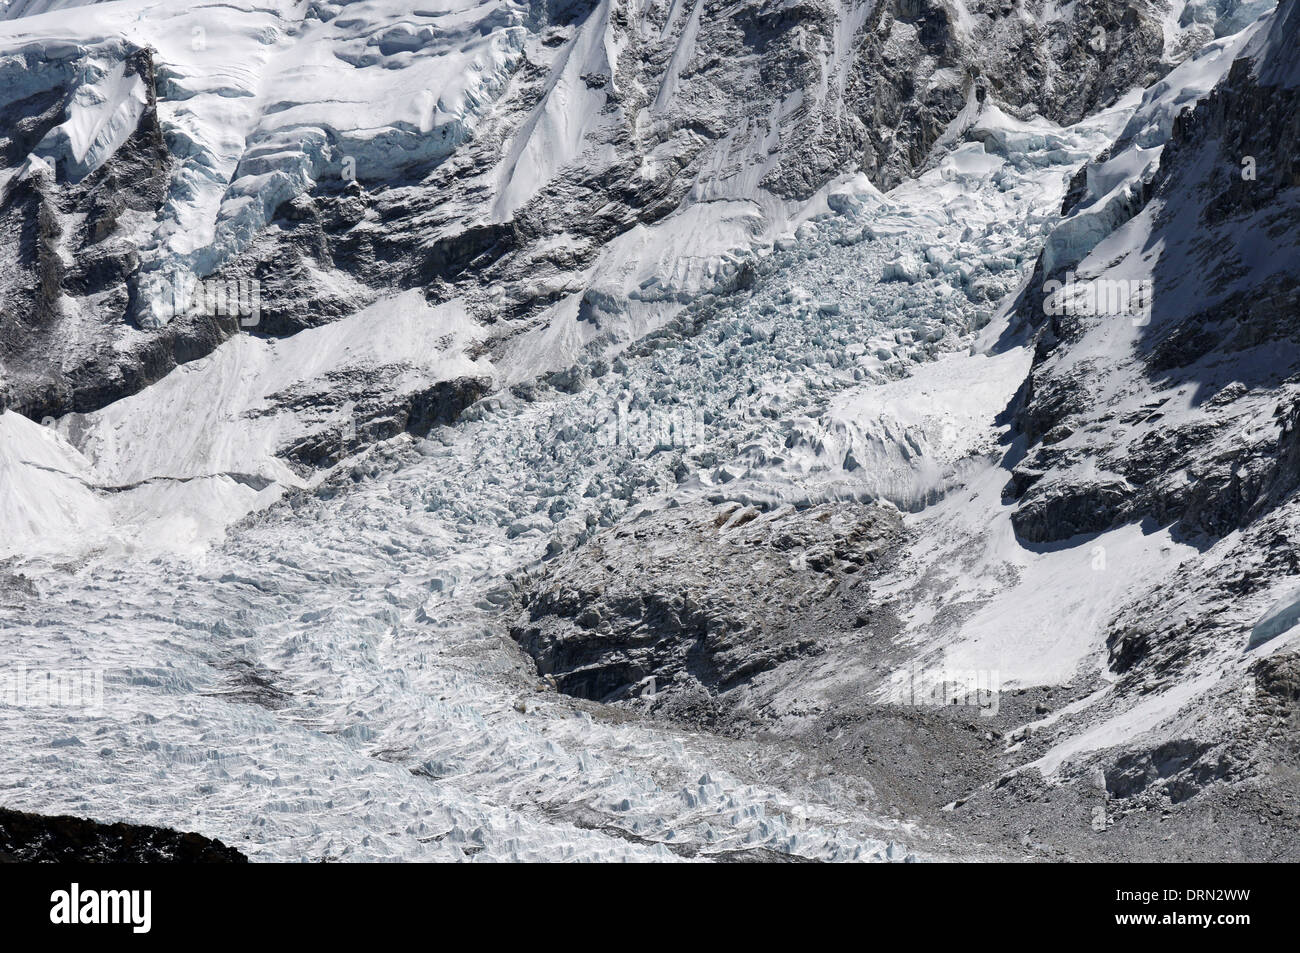 The Khumbu icefall as seen from Kala pattar - Stock Image